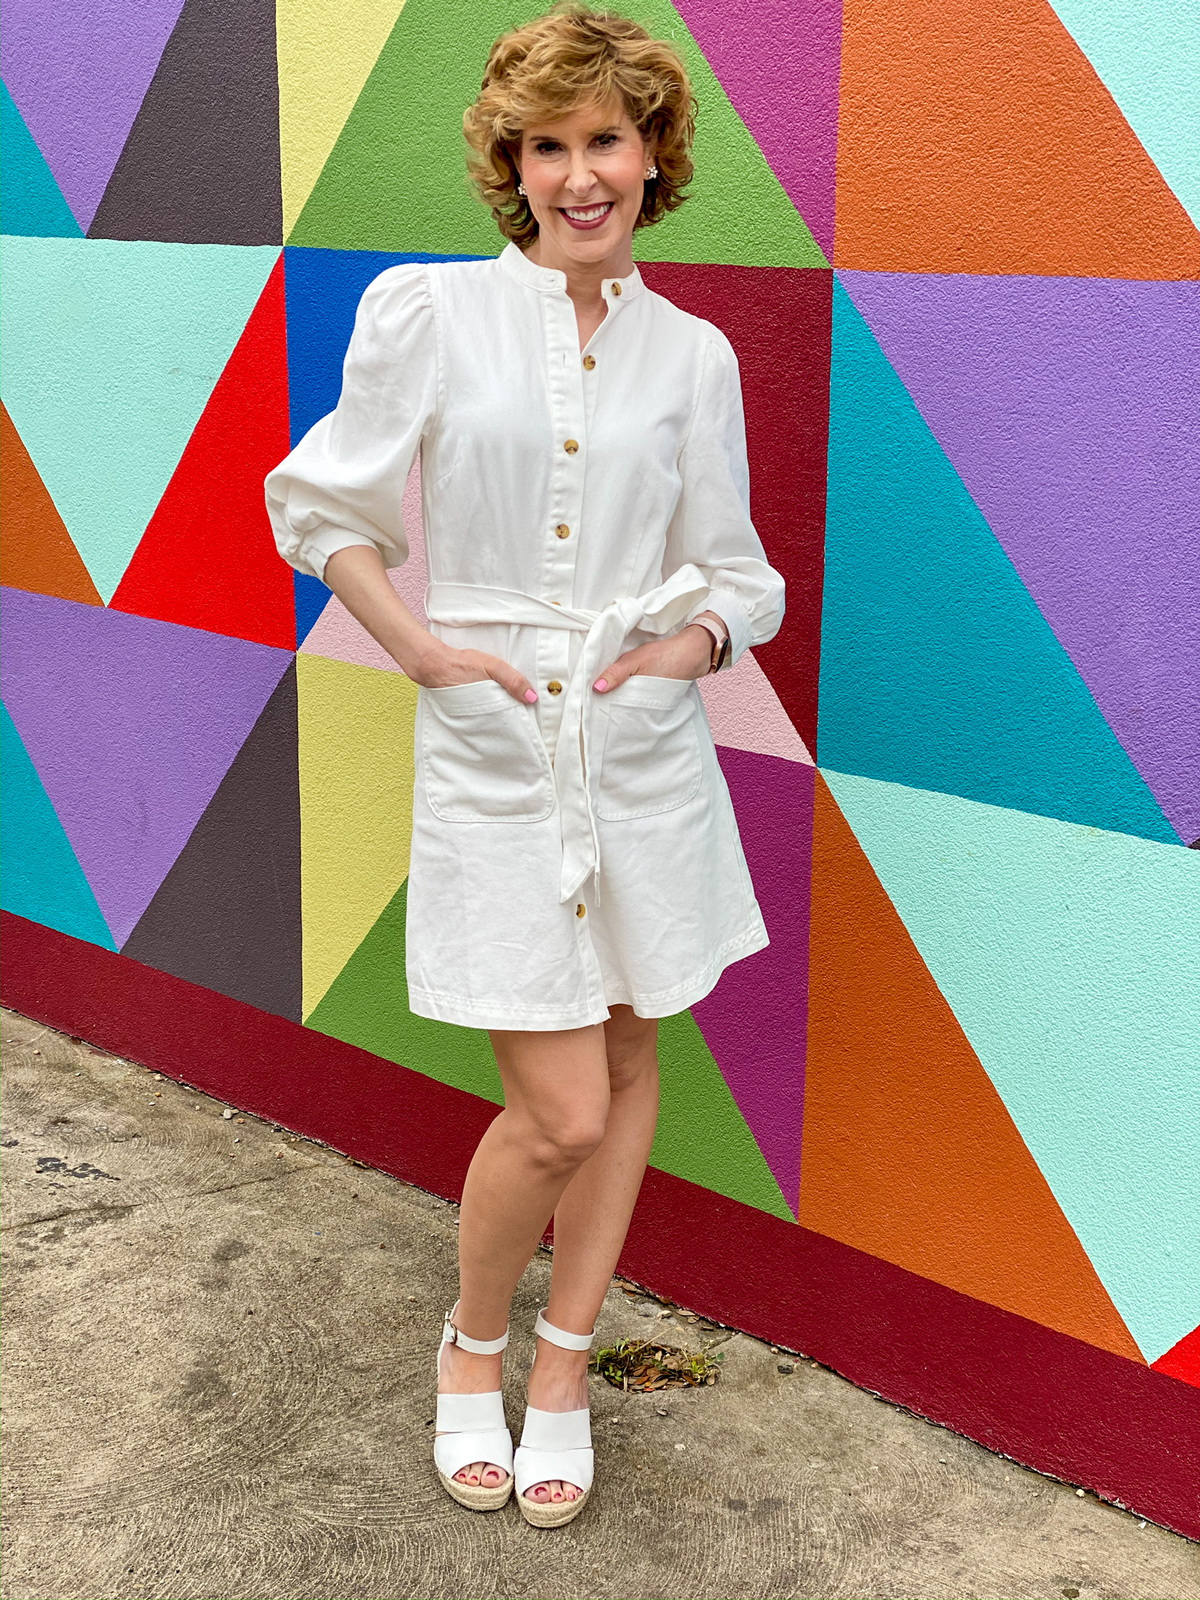 woman wearing white dress in front of colorful wall